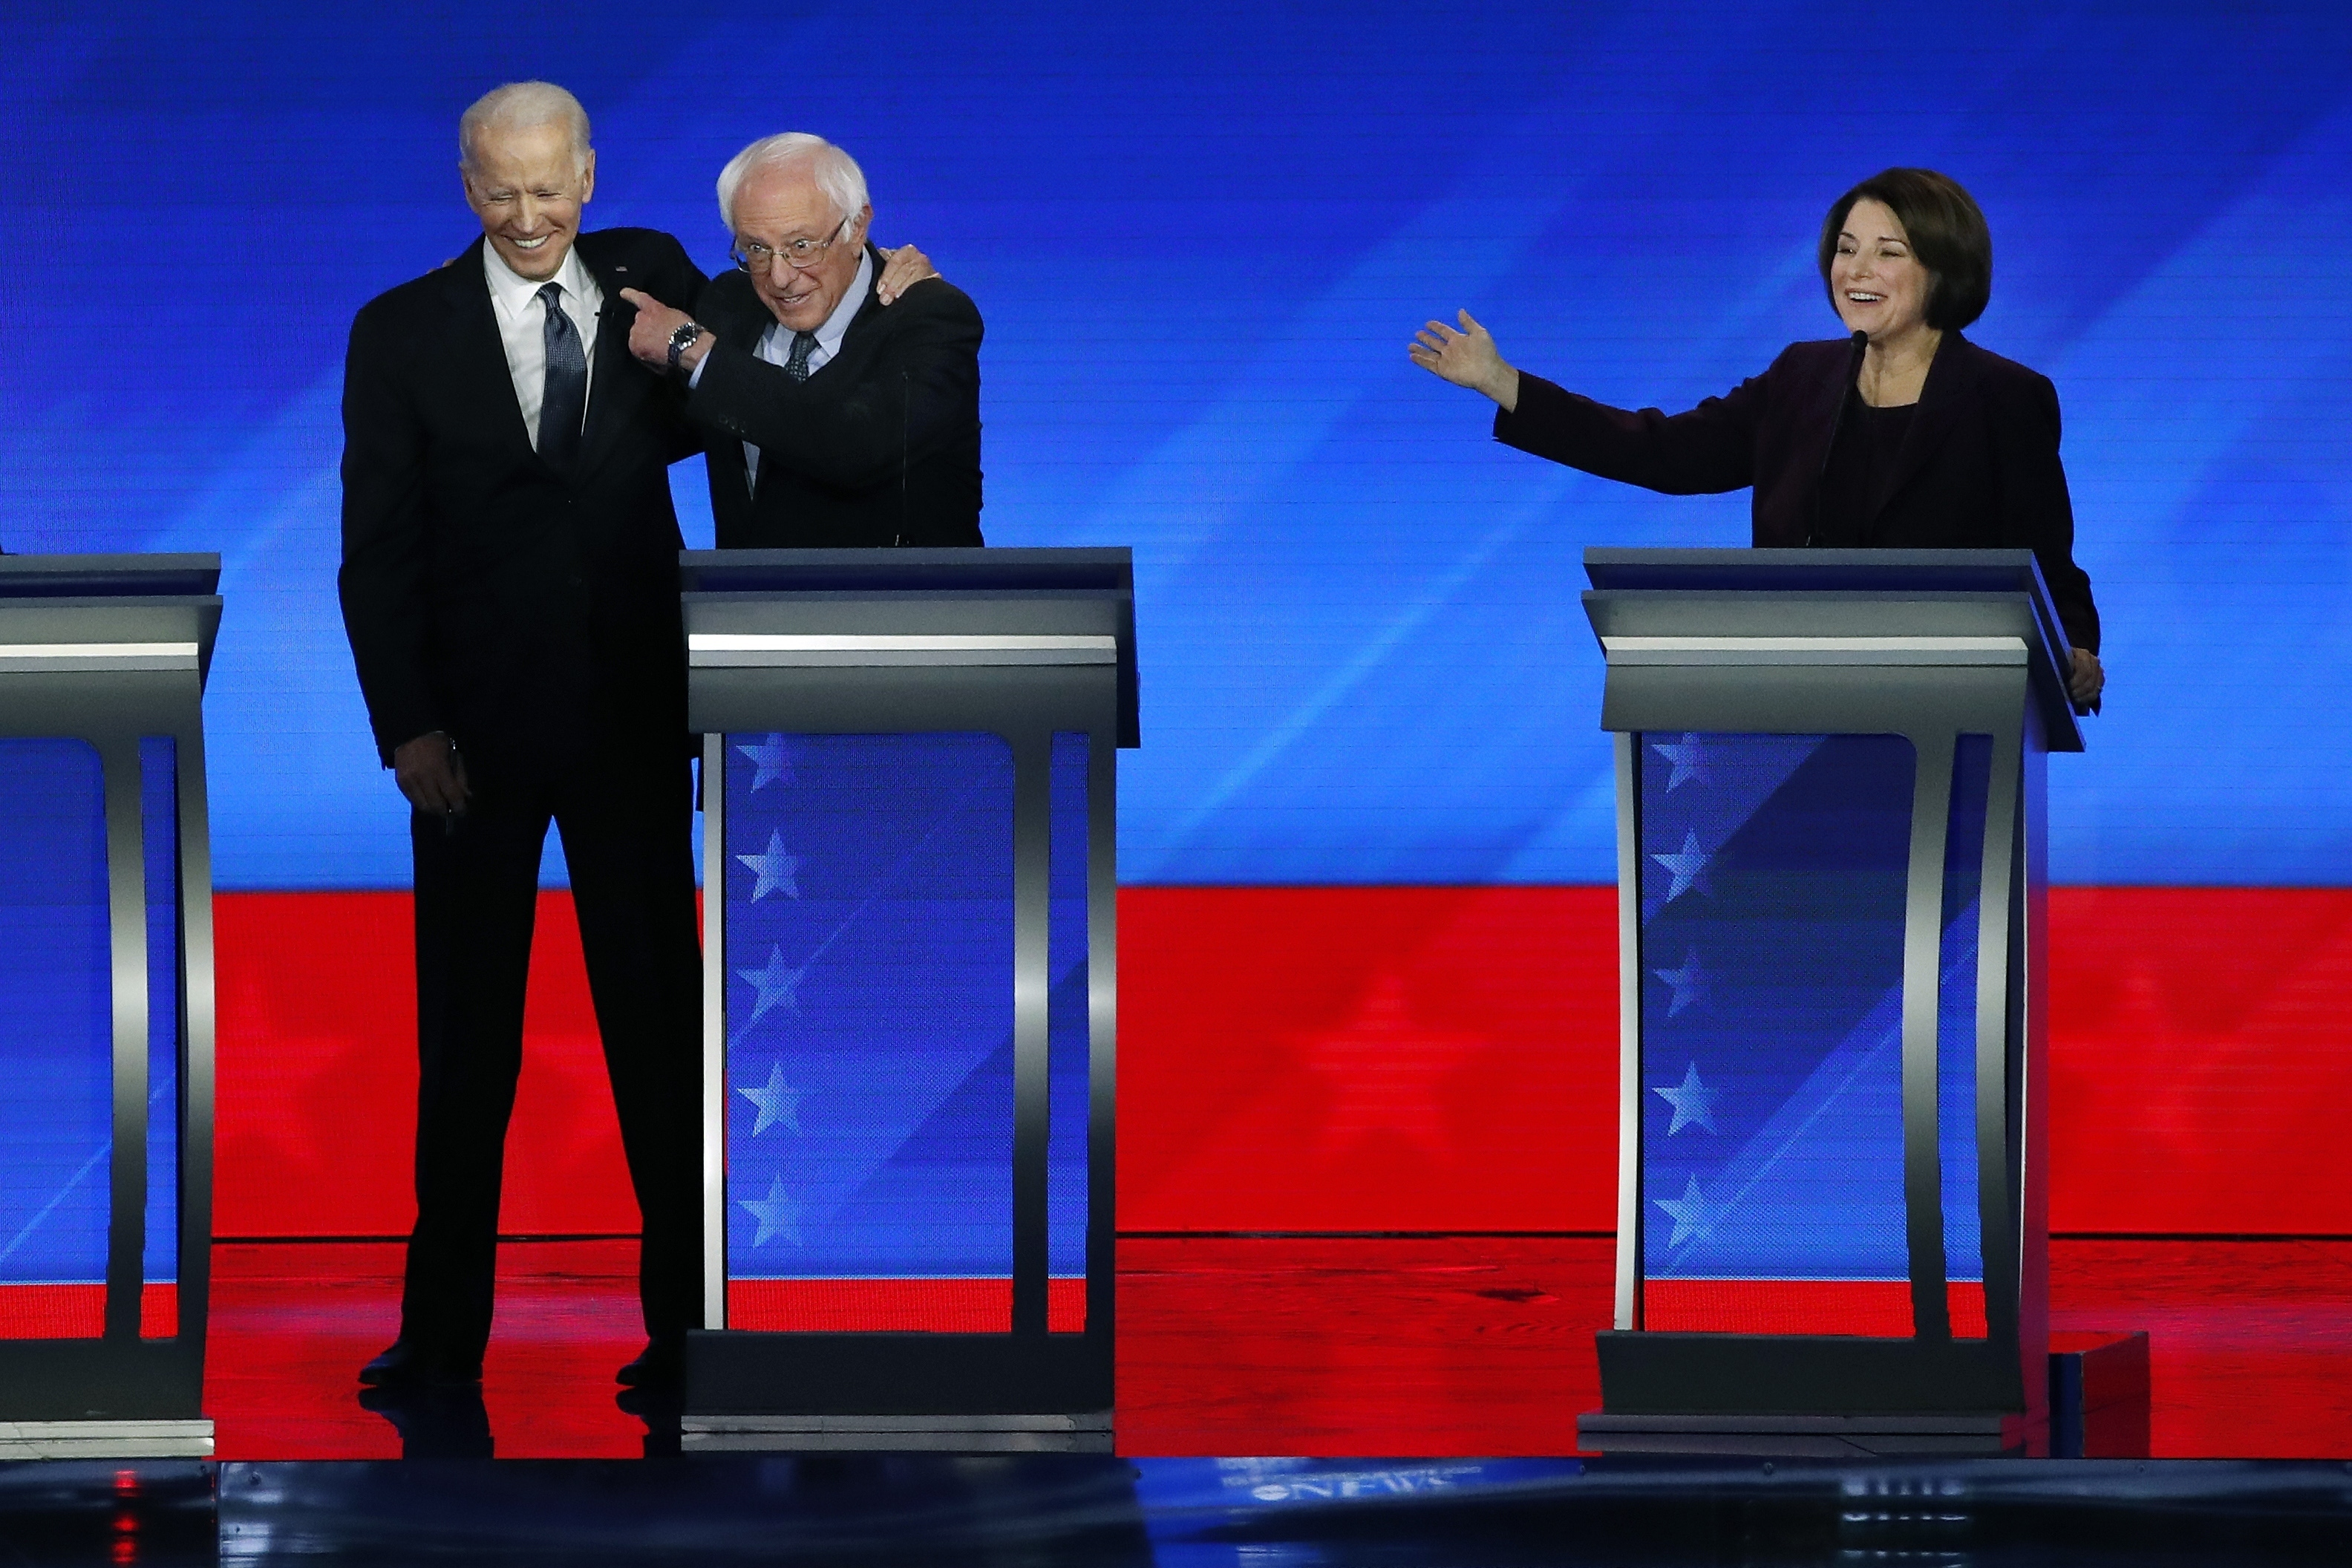 Joe Biden, Bernie Sanders and Amy Klobuchar